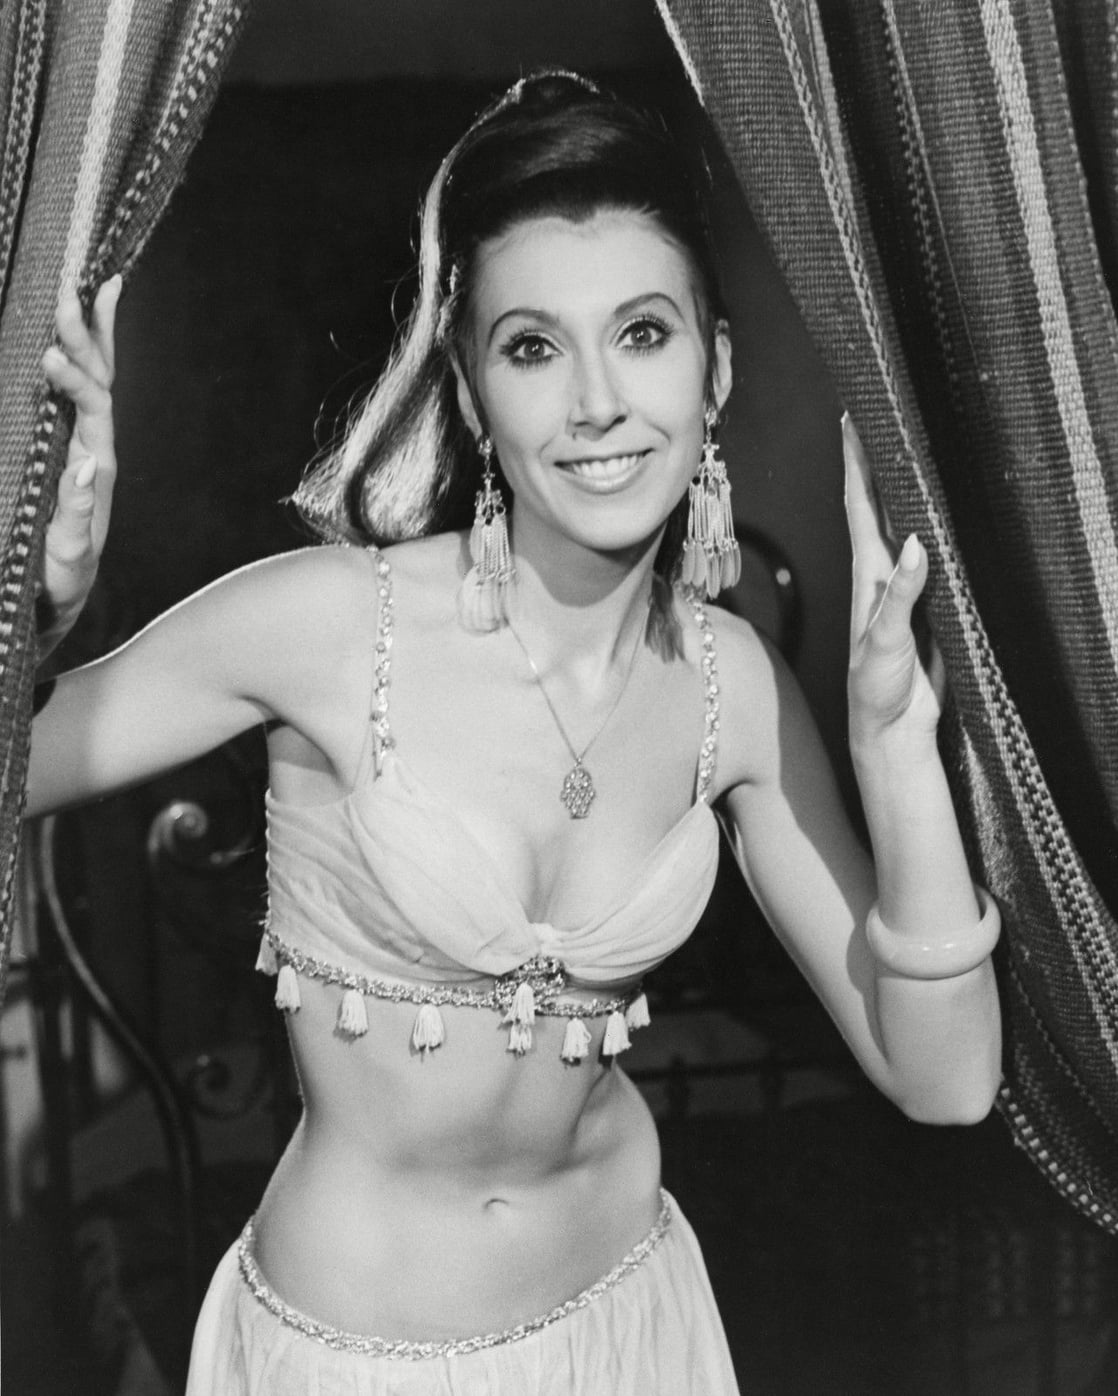 Anita Harris nudes (53 photo), Sexy, Leaked, Boobs, underwear 2006